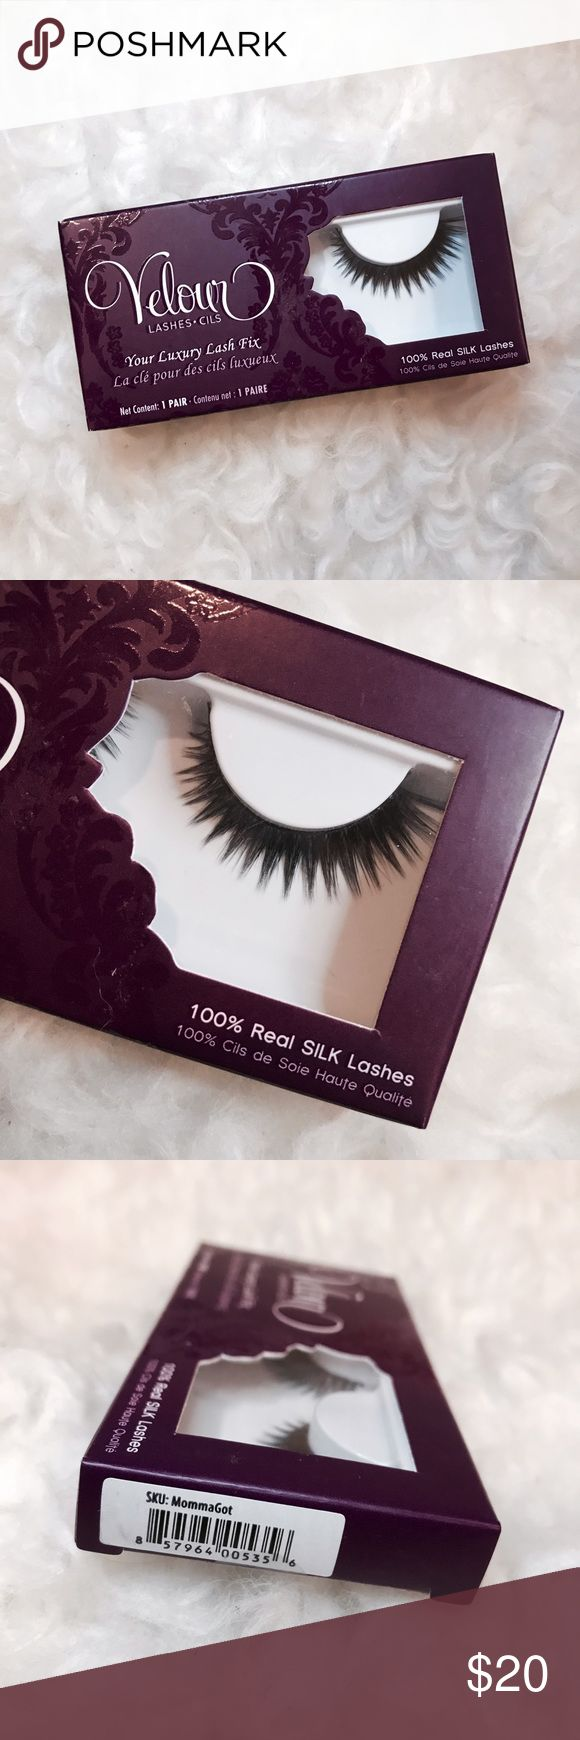 Velour Lashes Momma Got Lash Silk Lashes BRAND 🆕 IN BOX!!! Velour Lashes Momma Got Lash Silk Lashes  • Work what your momma gave you! This natural lash just adds that perfect amount of volume to give your eyes that boost. Made with the finest silk material, all Velour lashes are 100% hand made and super luxurious, comfortable and long lasting!   - 100% SILK Lashes provides the most natural looking lashes - Long Lasting: On average 20 Applications per lash!!! - Hand-made cotton thread band…